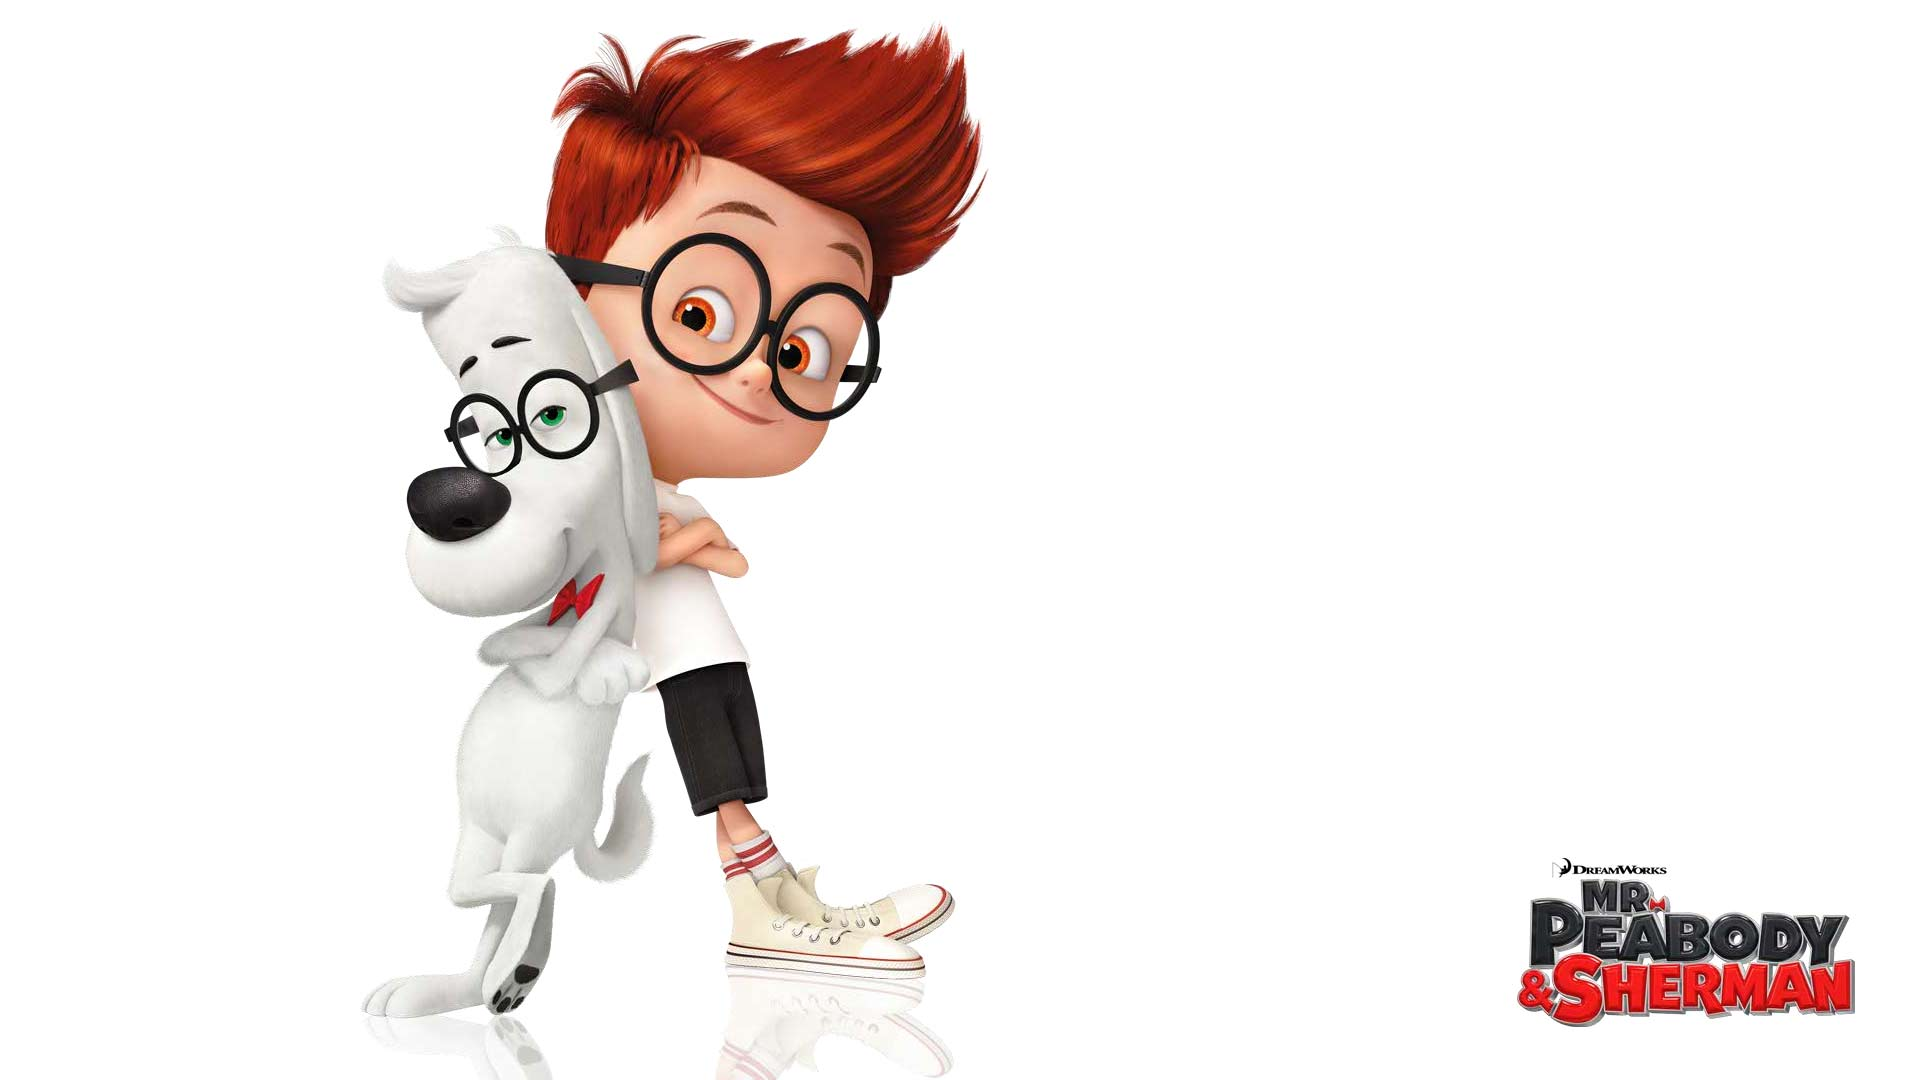 Mr. Peabody & Sherman #8